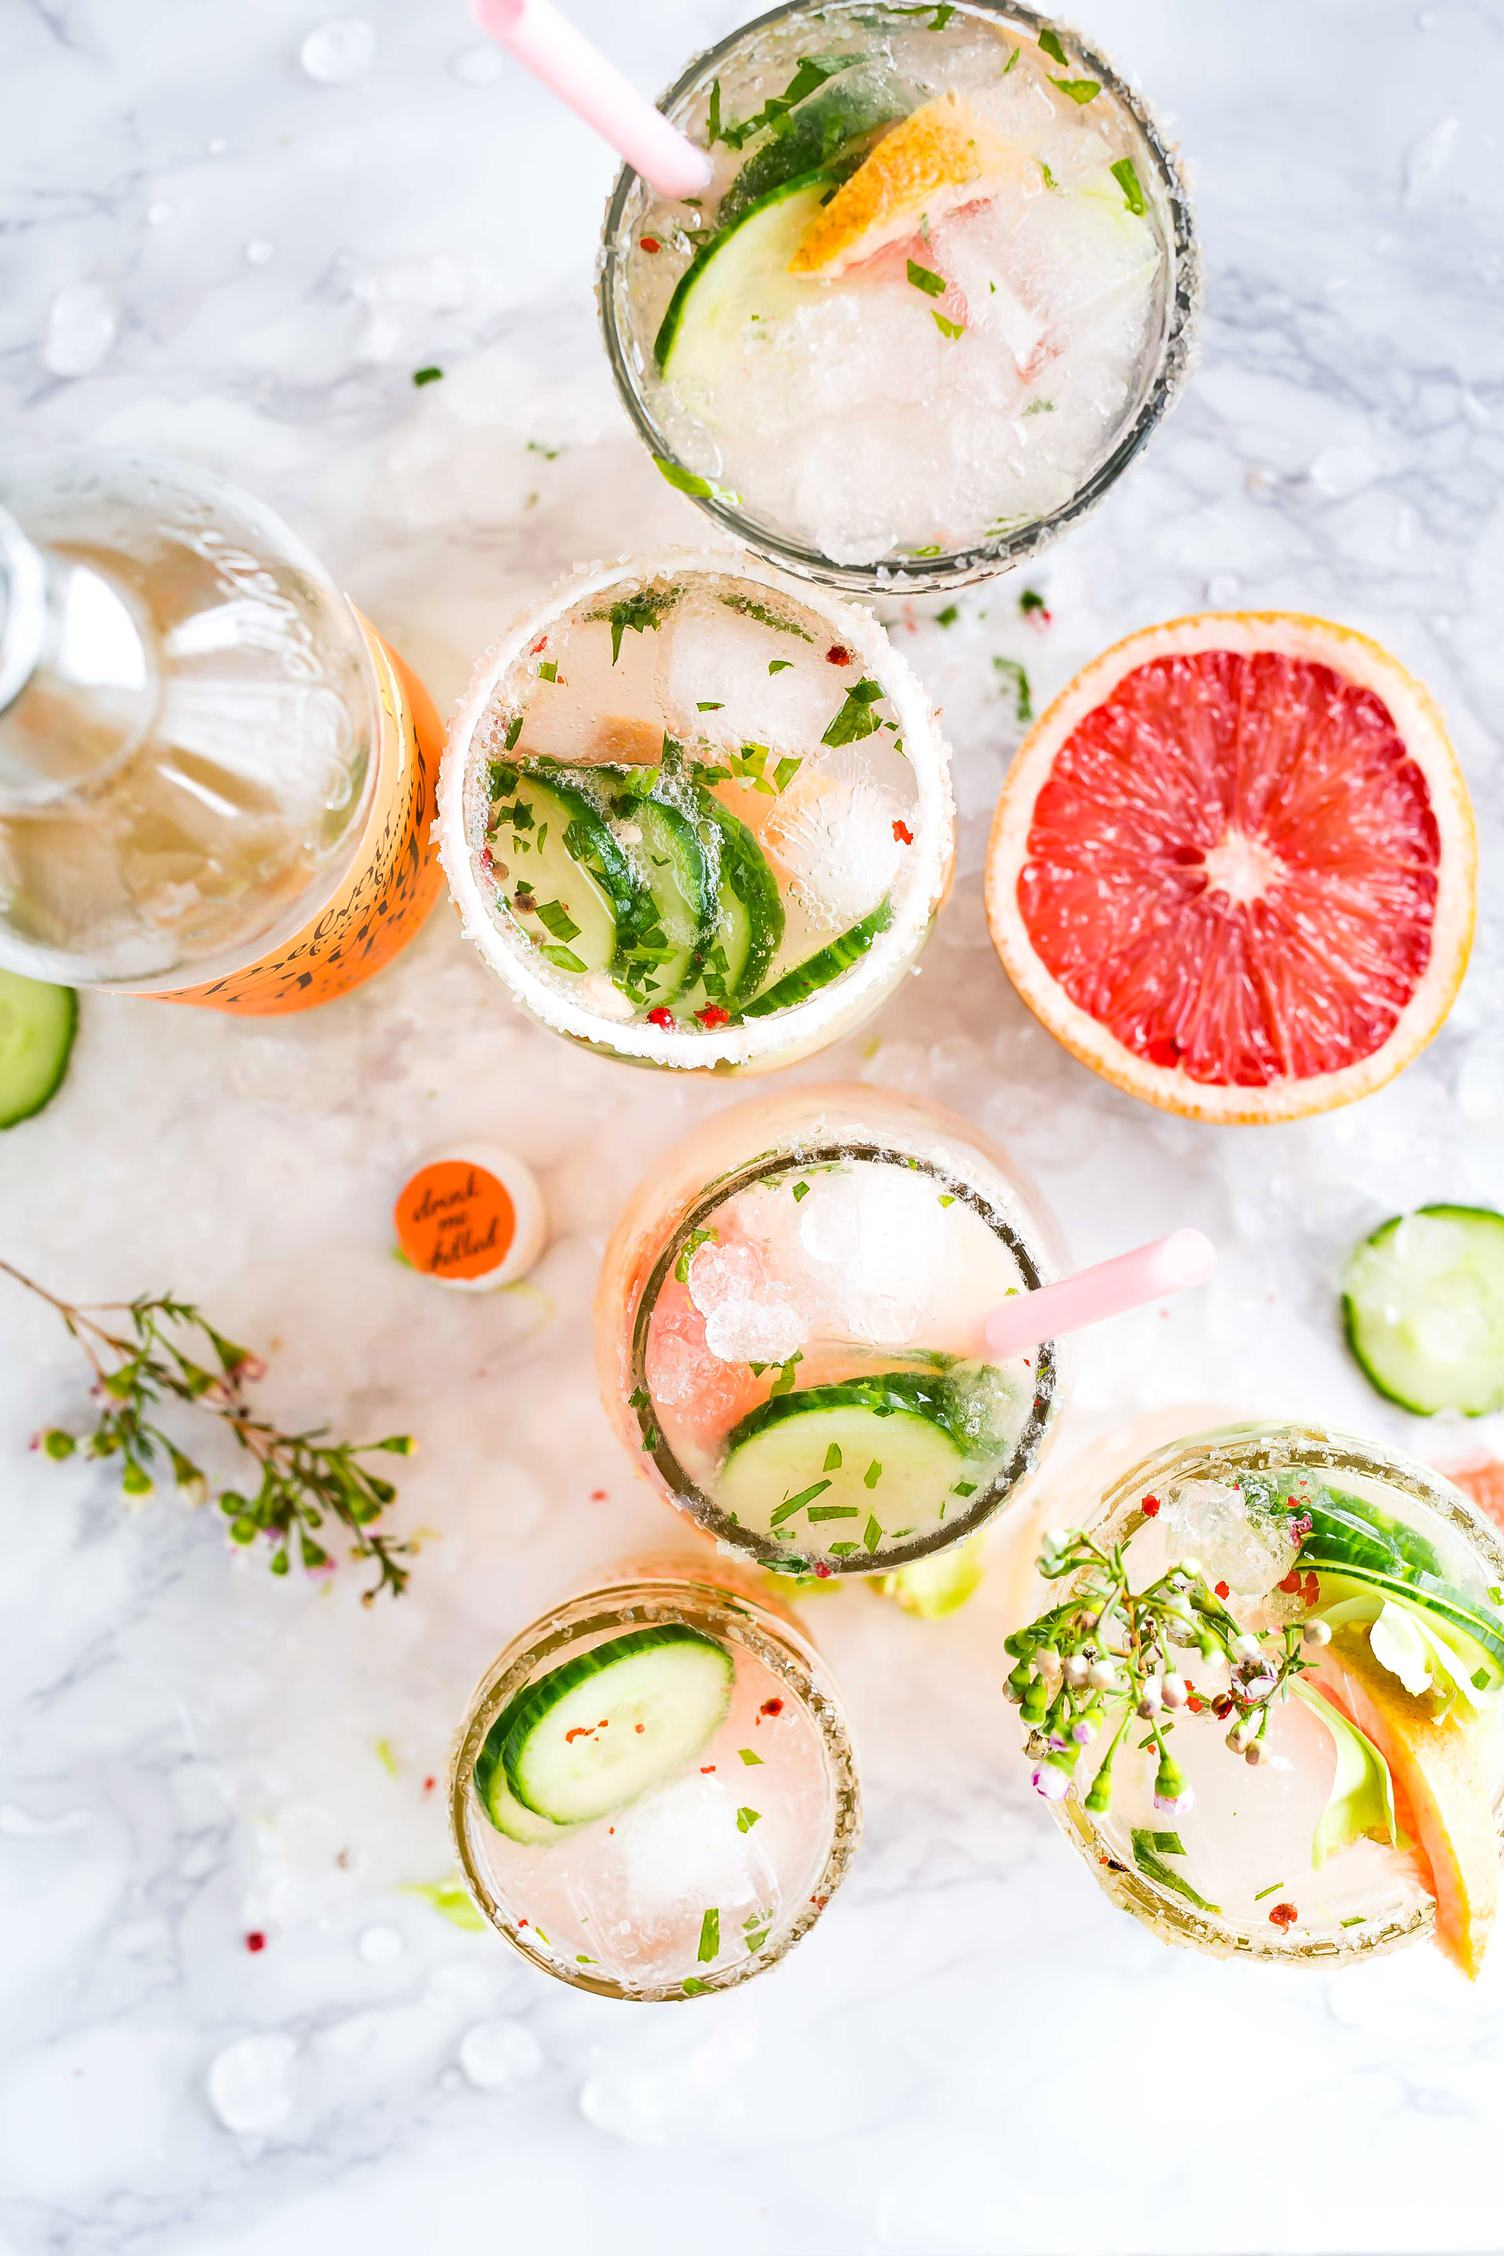 Refreshing Summer Cocktails with Citrus Fruits and Vegetables